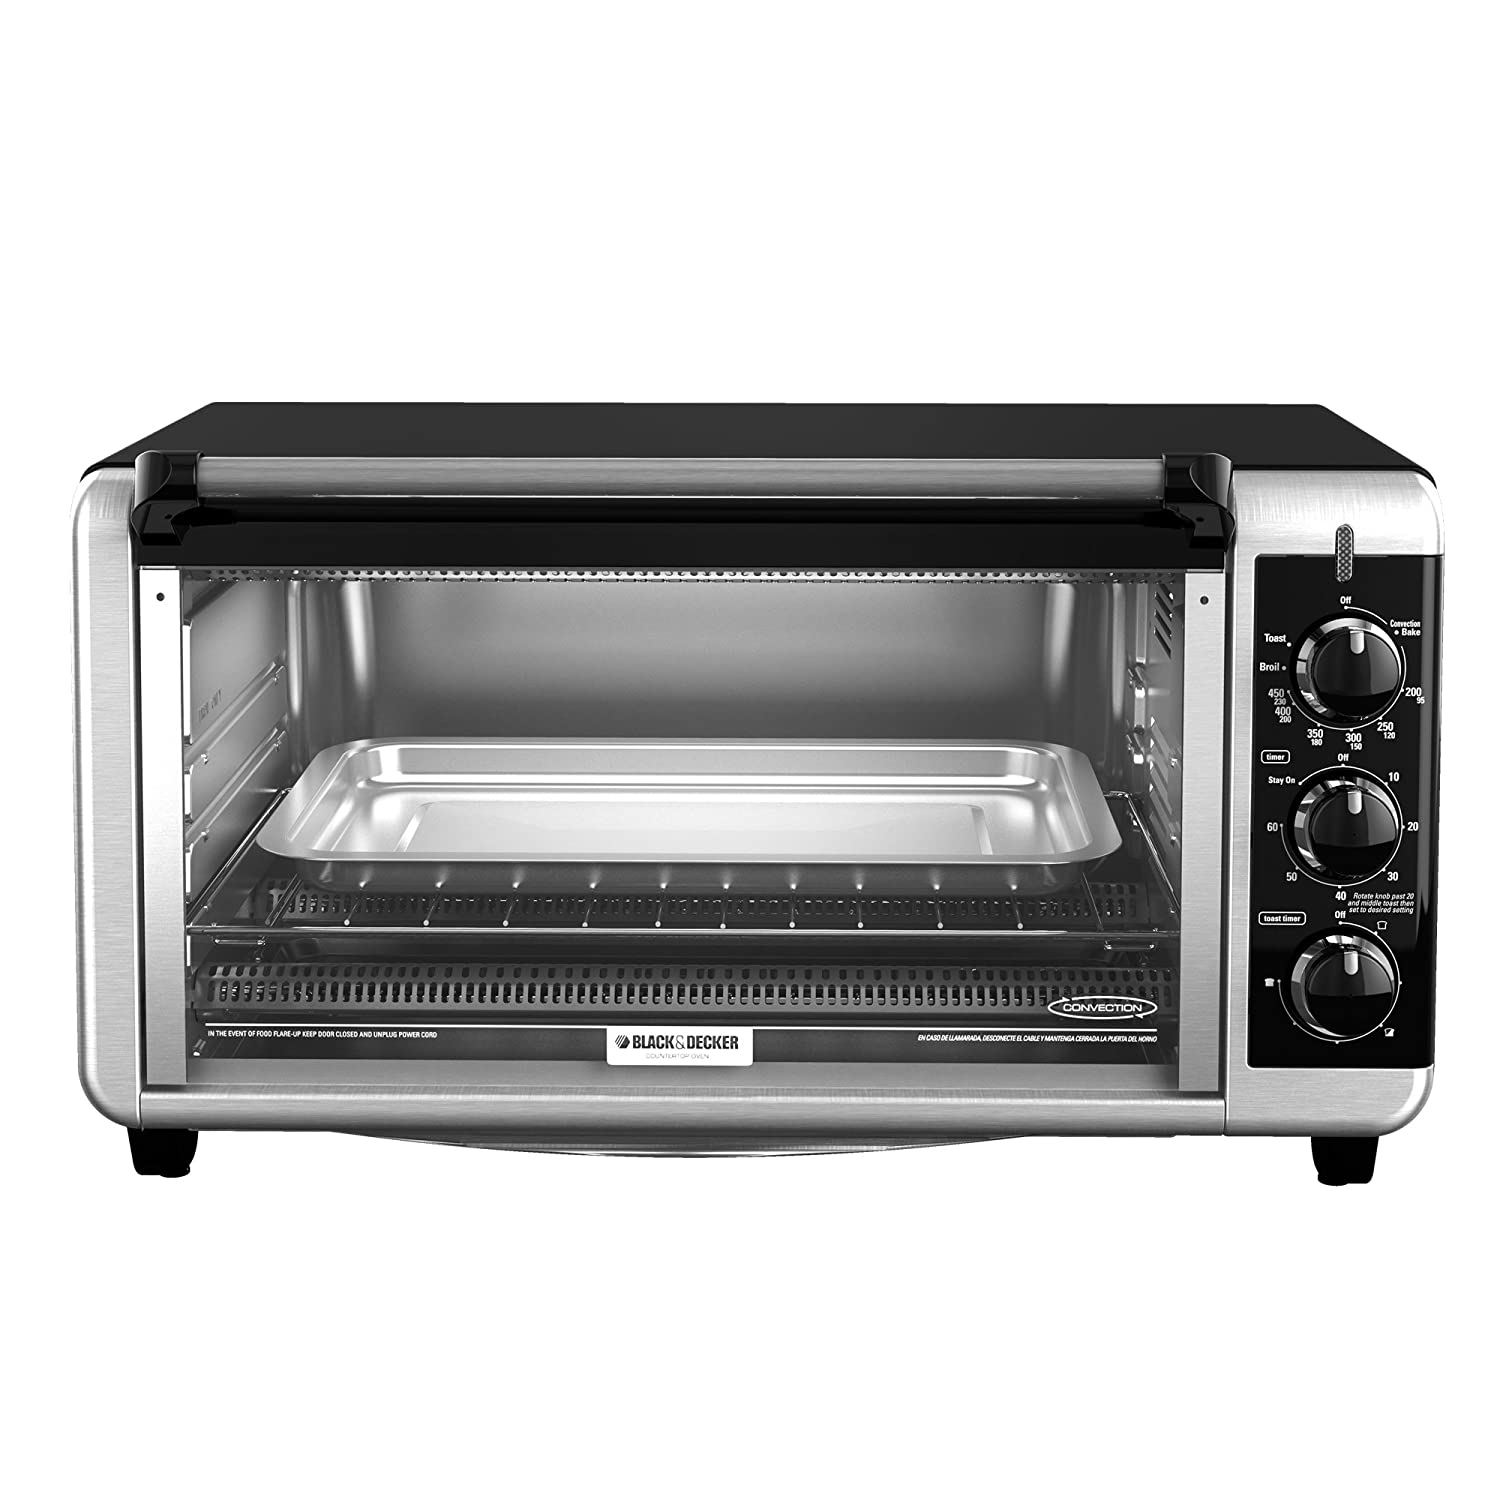 Oven Toaster Oven Toaster Meaning